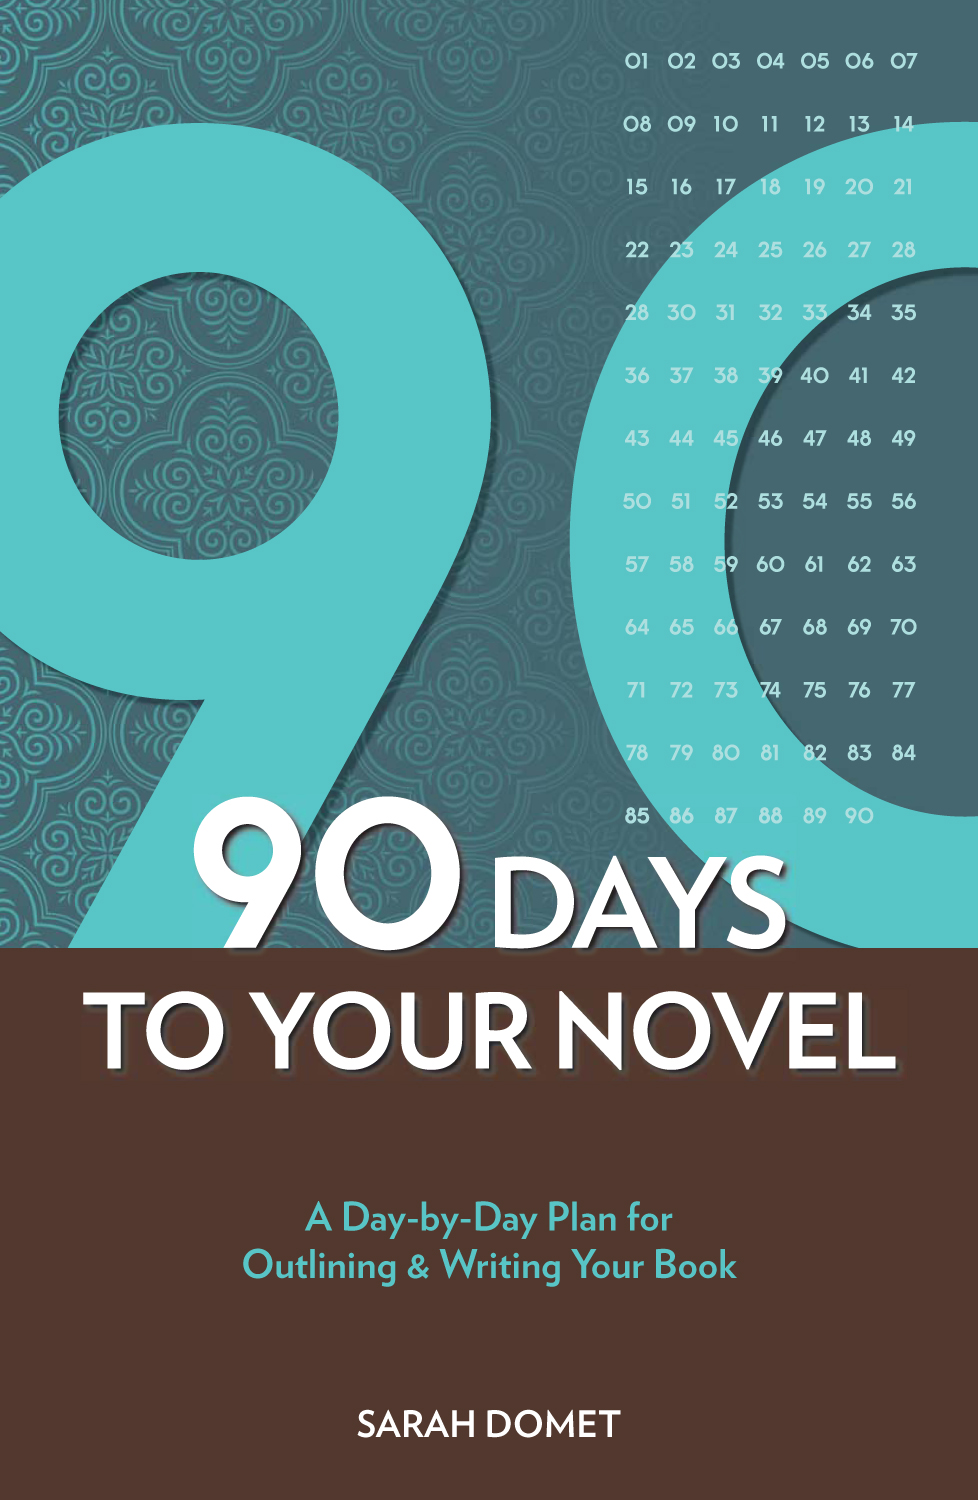 90 Days to Your Novel: A Day-by-Day Plan for Outlining & Writing Your Book By: Sarah Domet